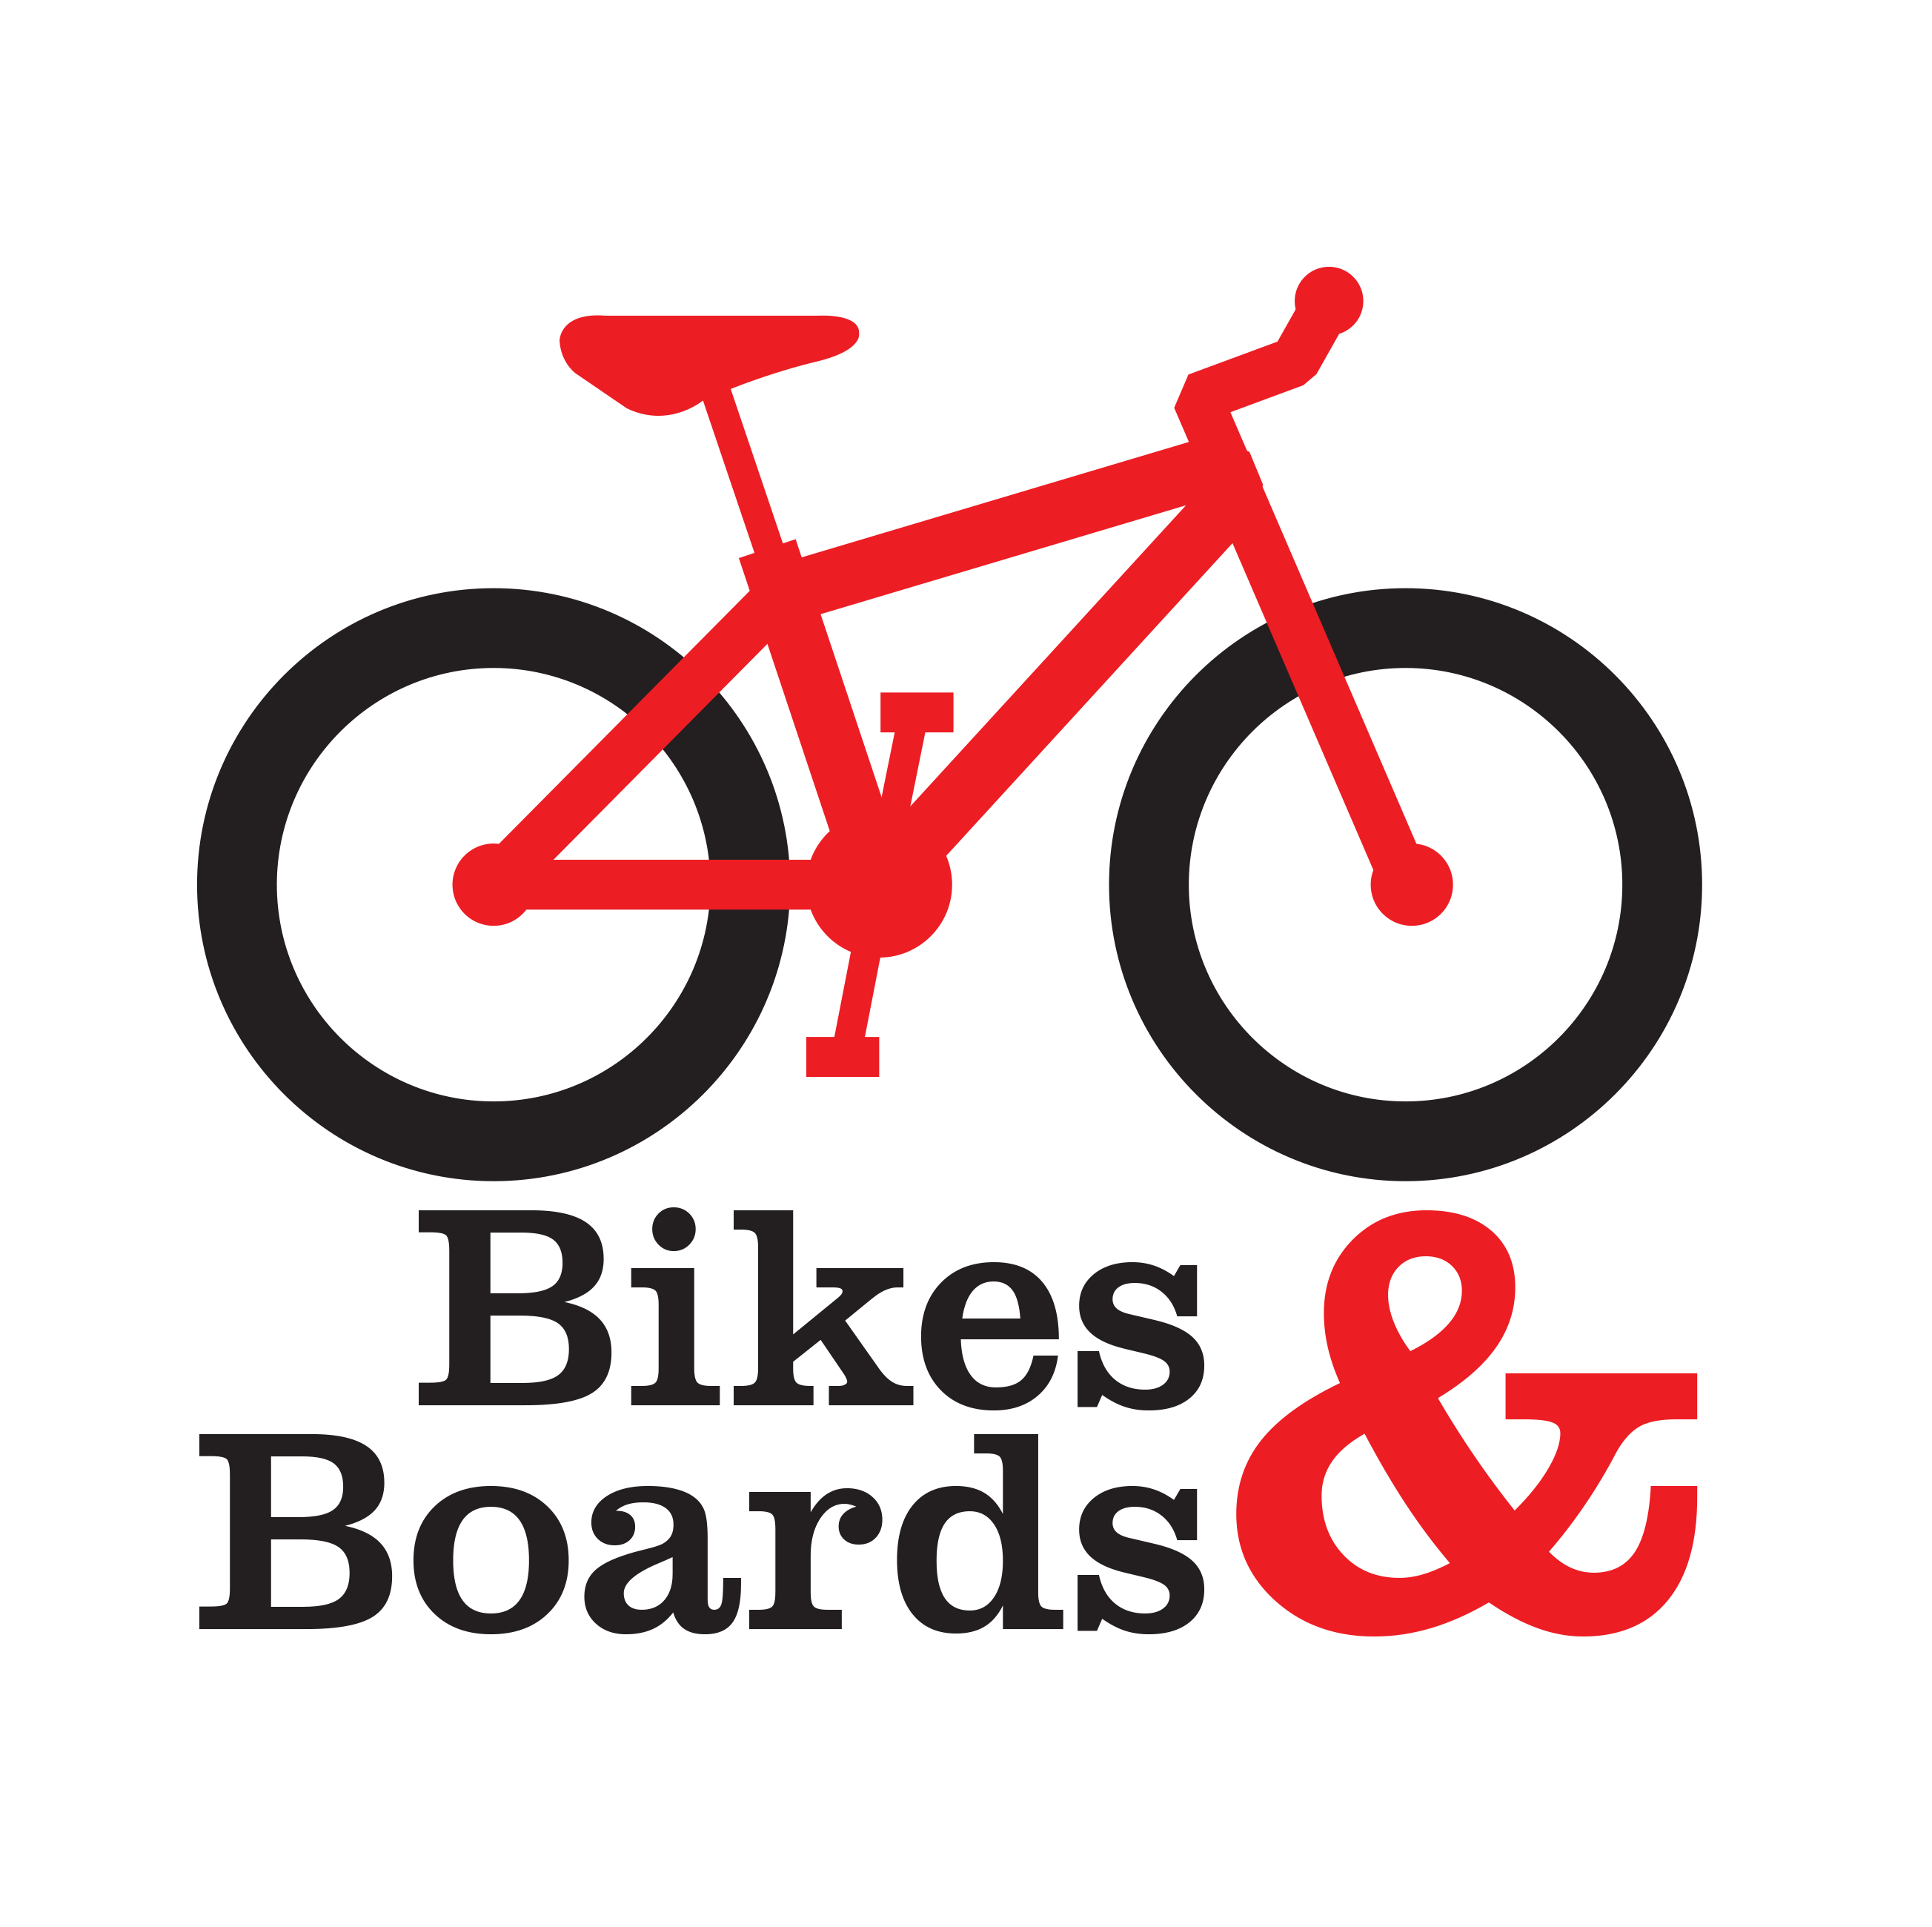 Bikes & Boards Logo